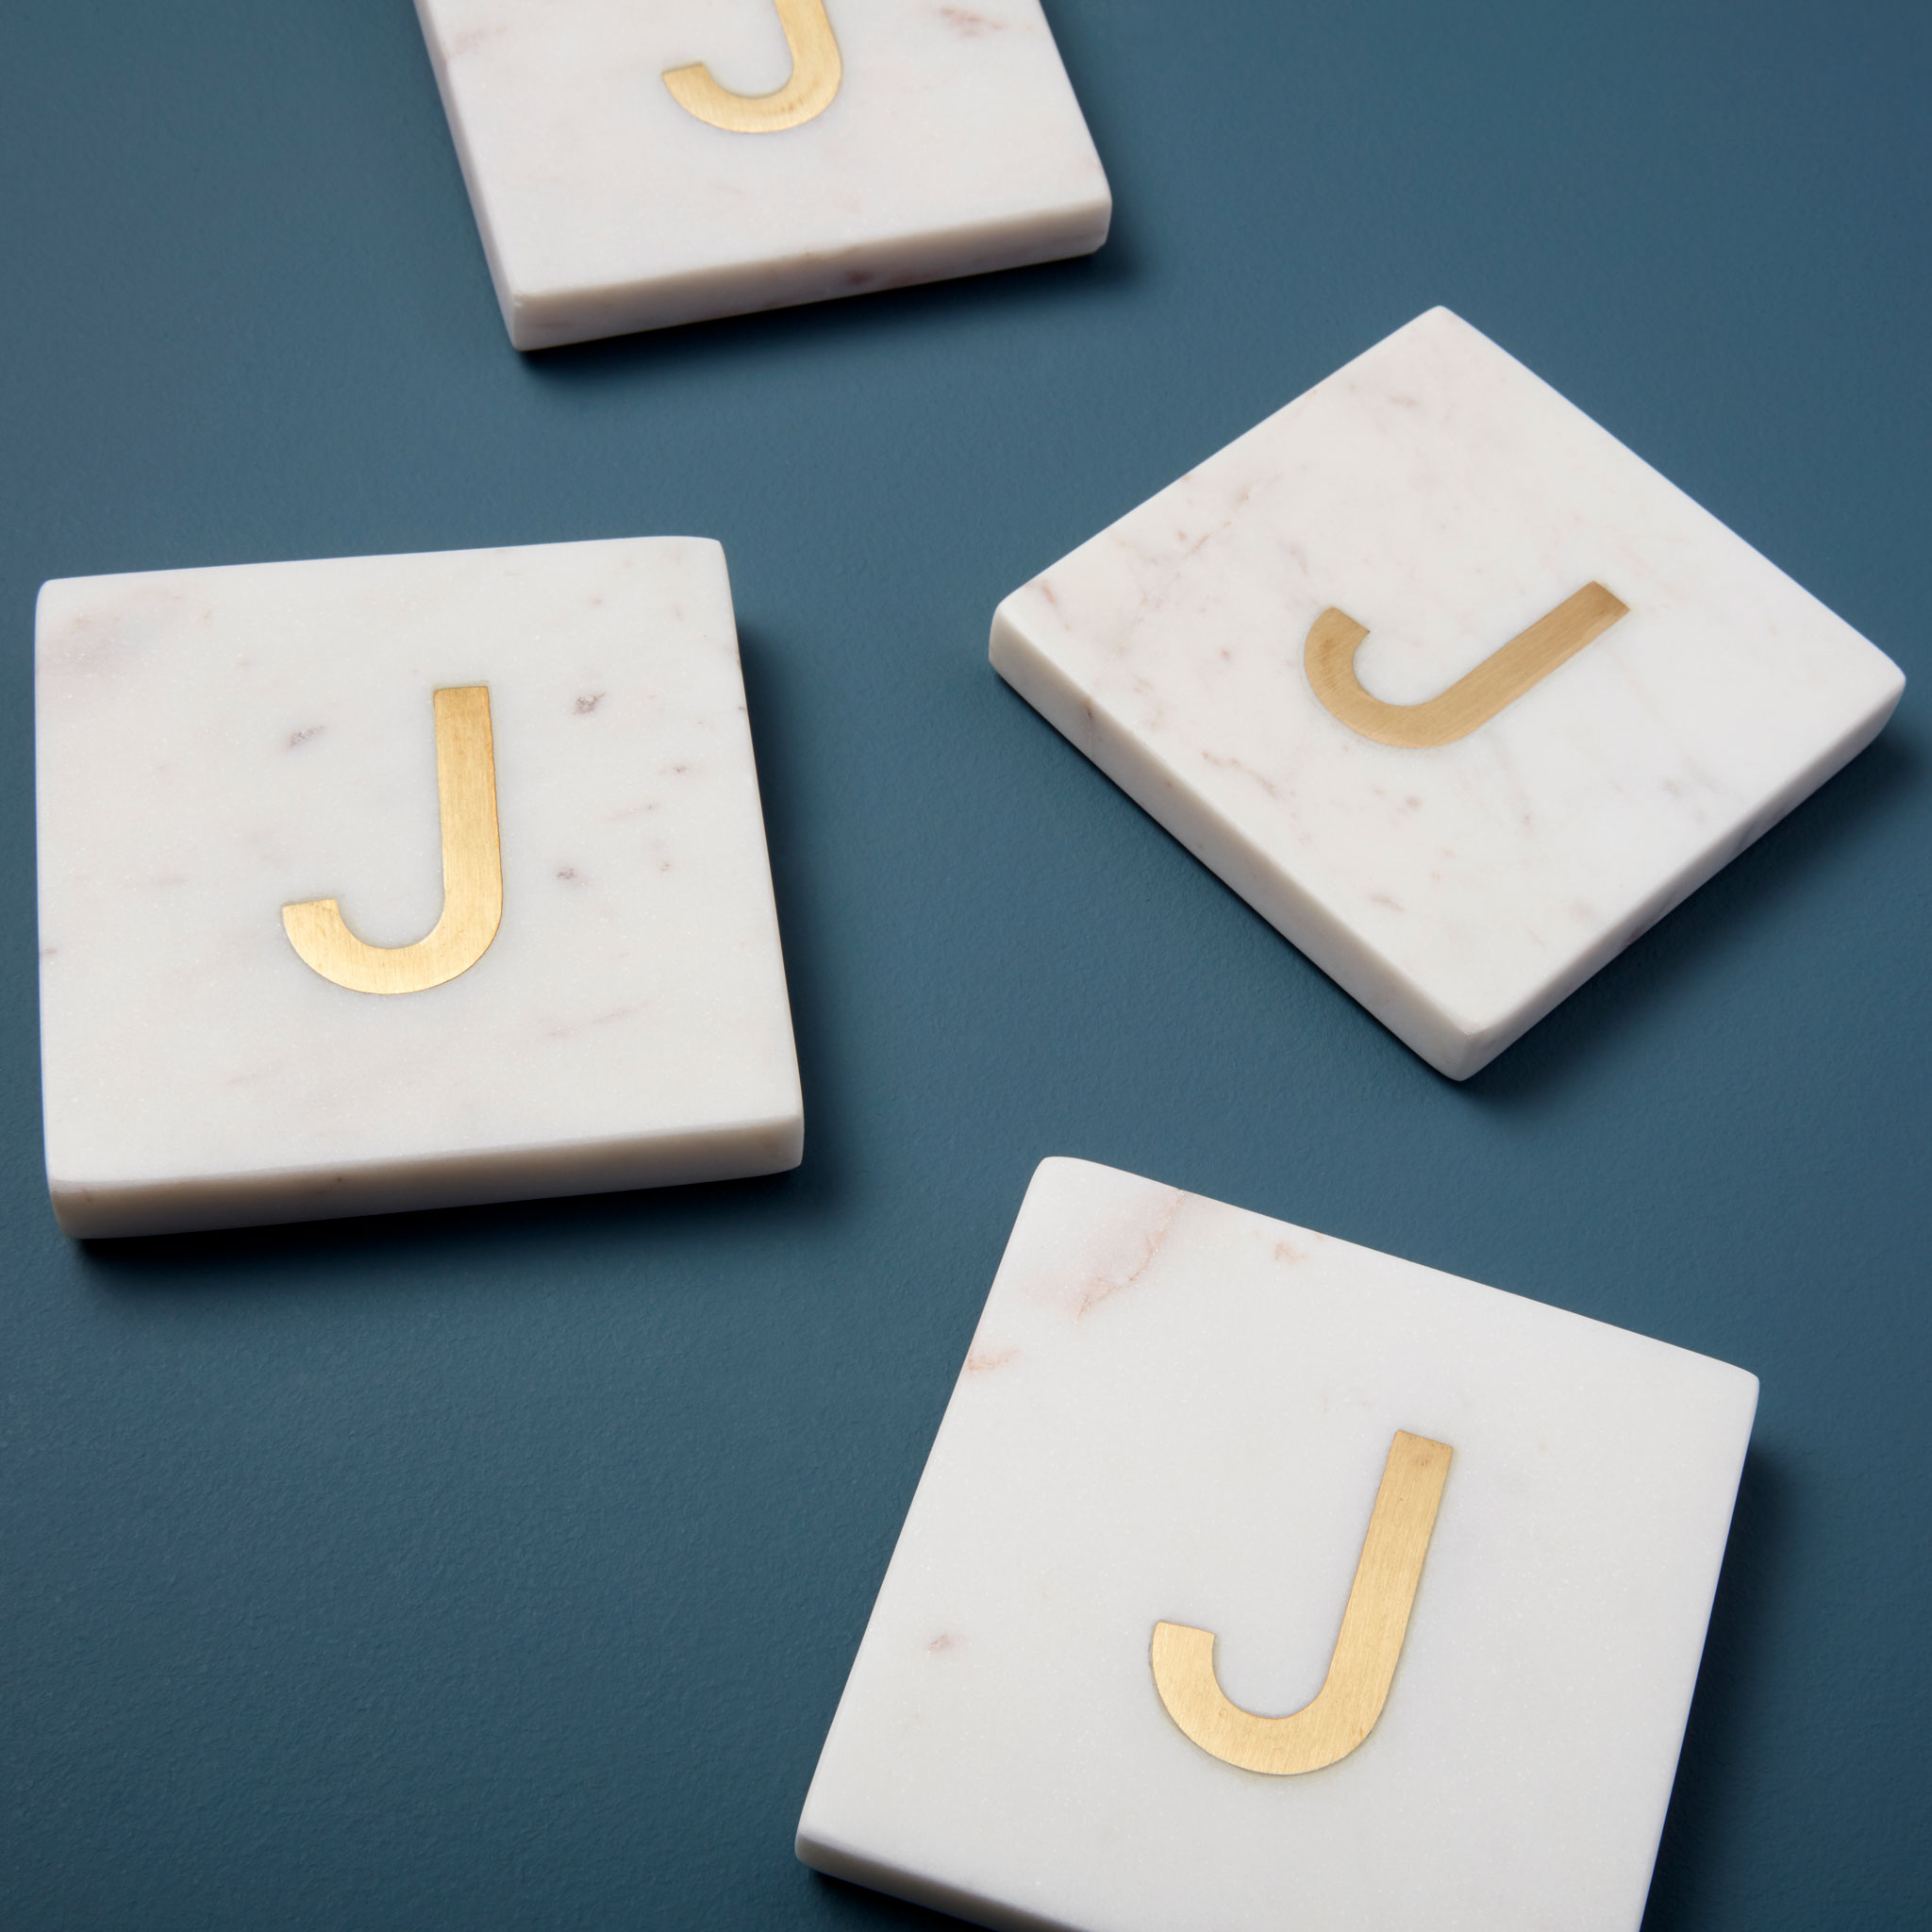 Be-Home_White-Marble-and-Gold-Monogram-Coasters-Set-of-4-J_580-208